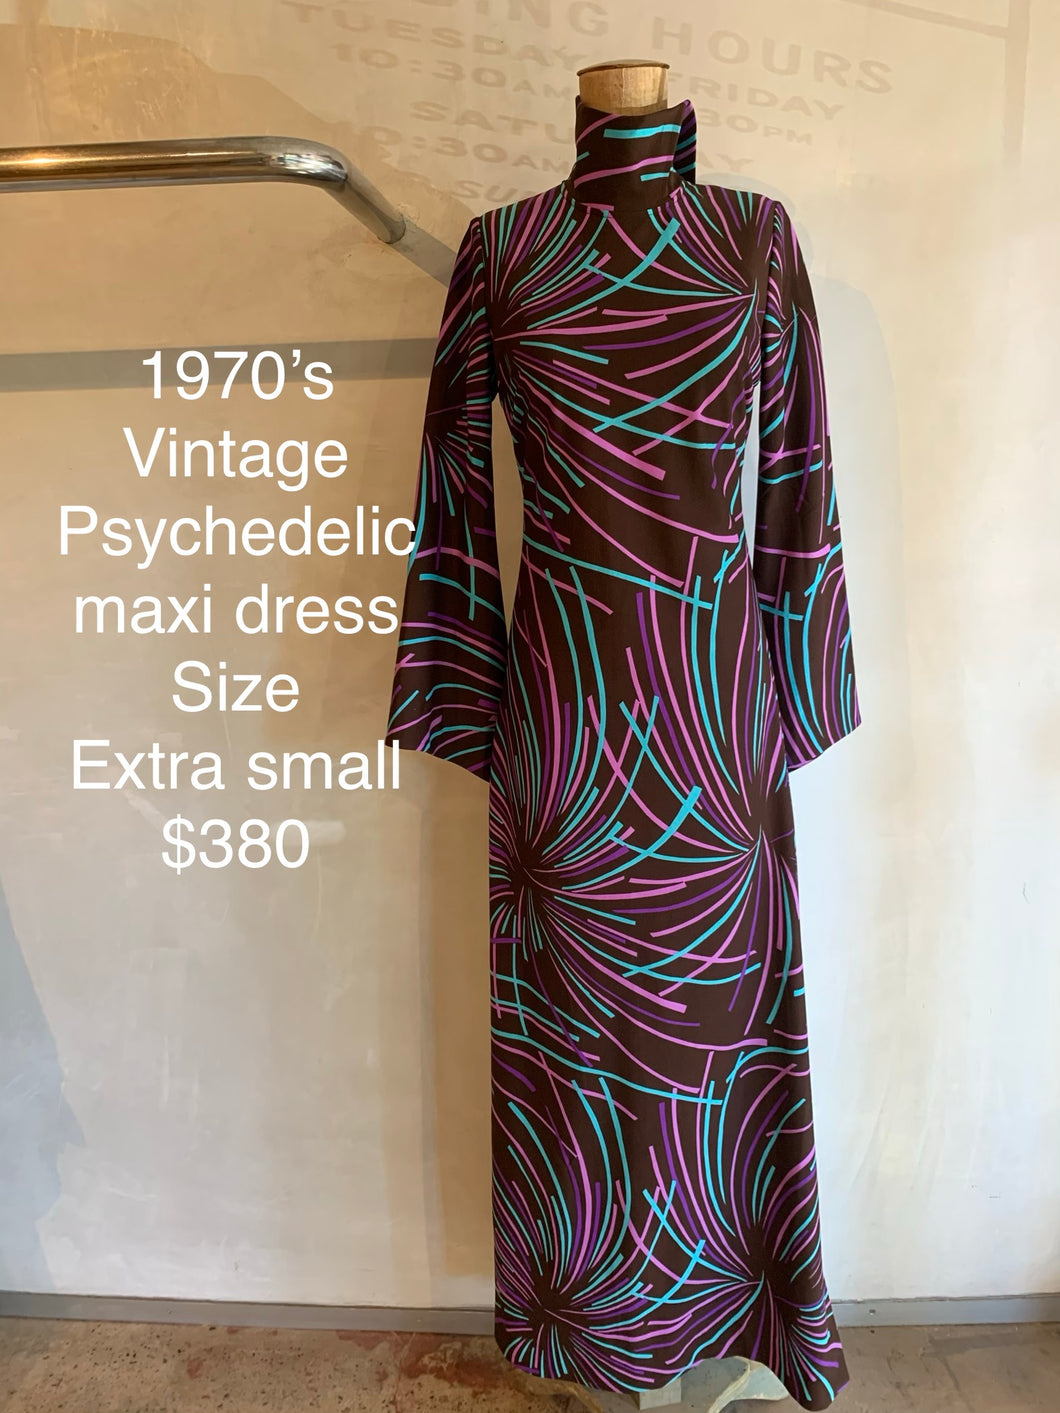 Vintage 1970's Psychedelic maxi dress